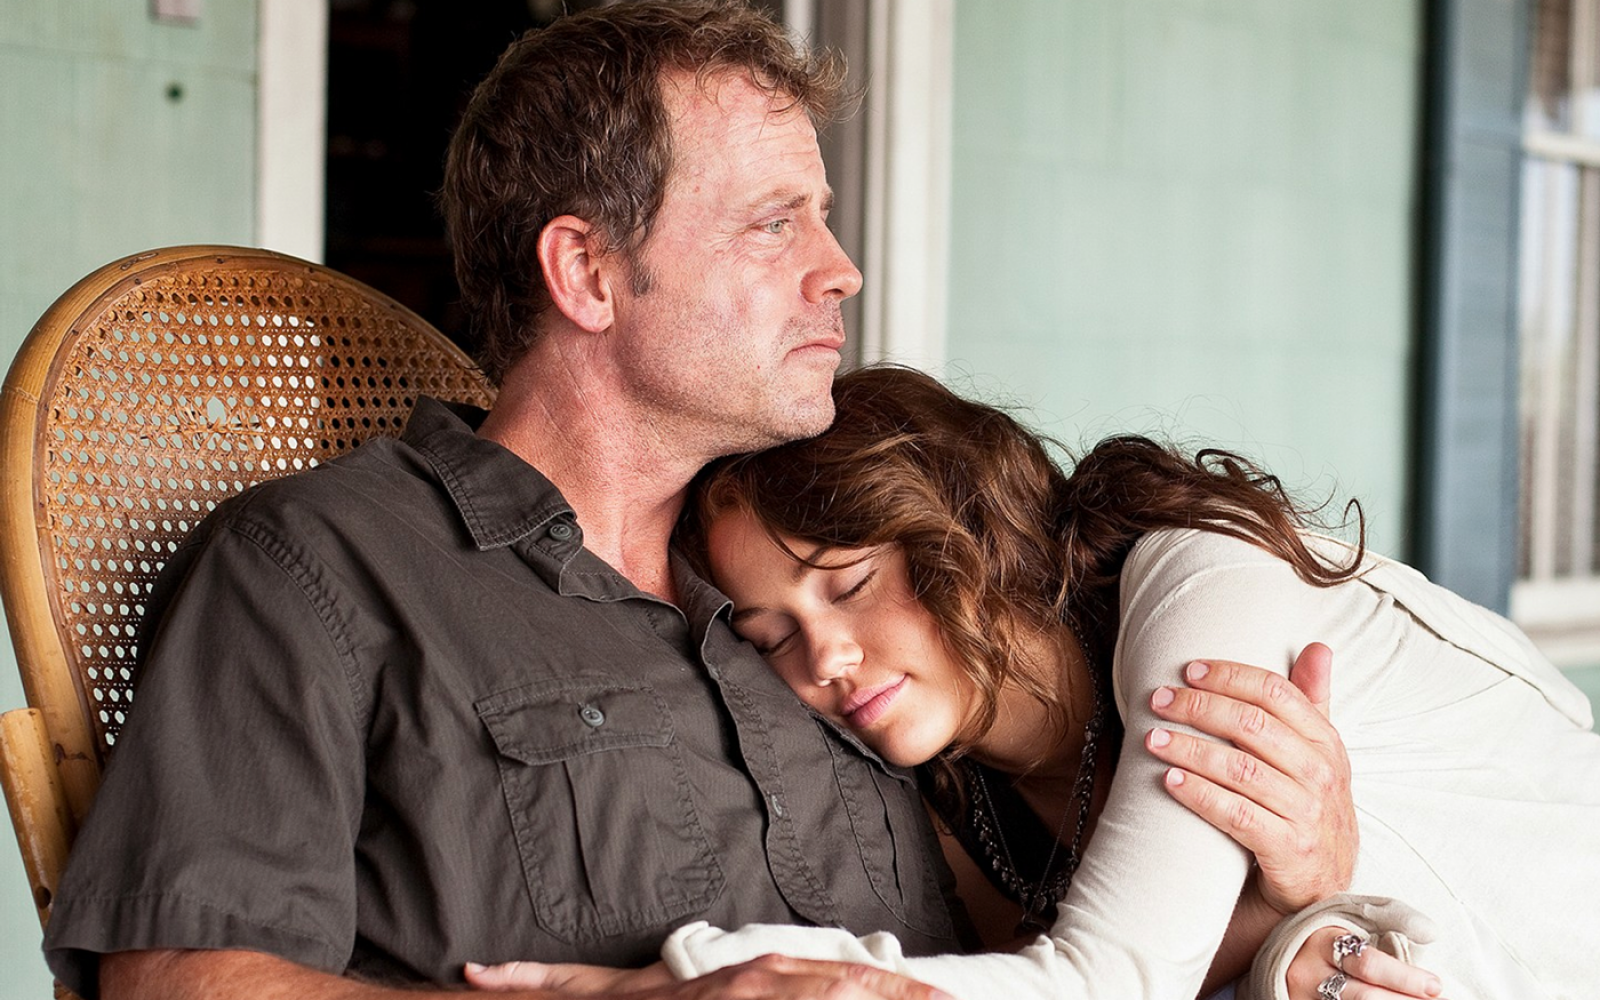 22 Quotes From 'The Last Song' That Show Us The Beautiful Parts Of True Love